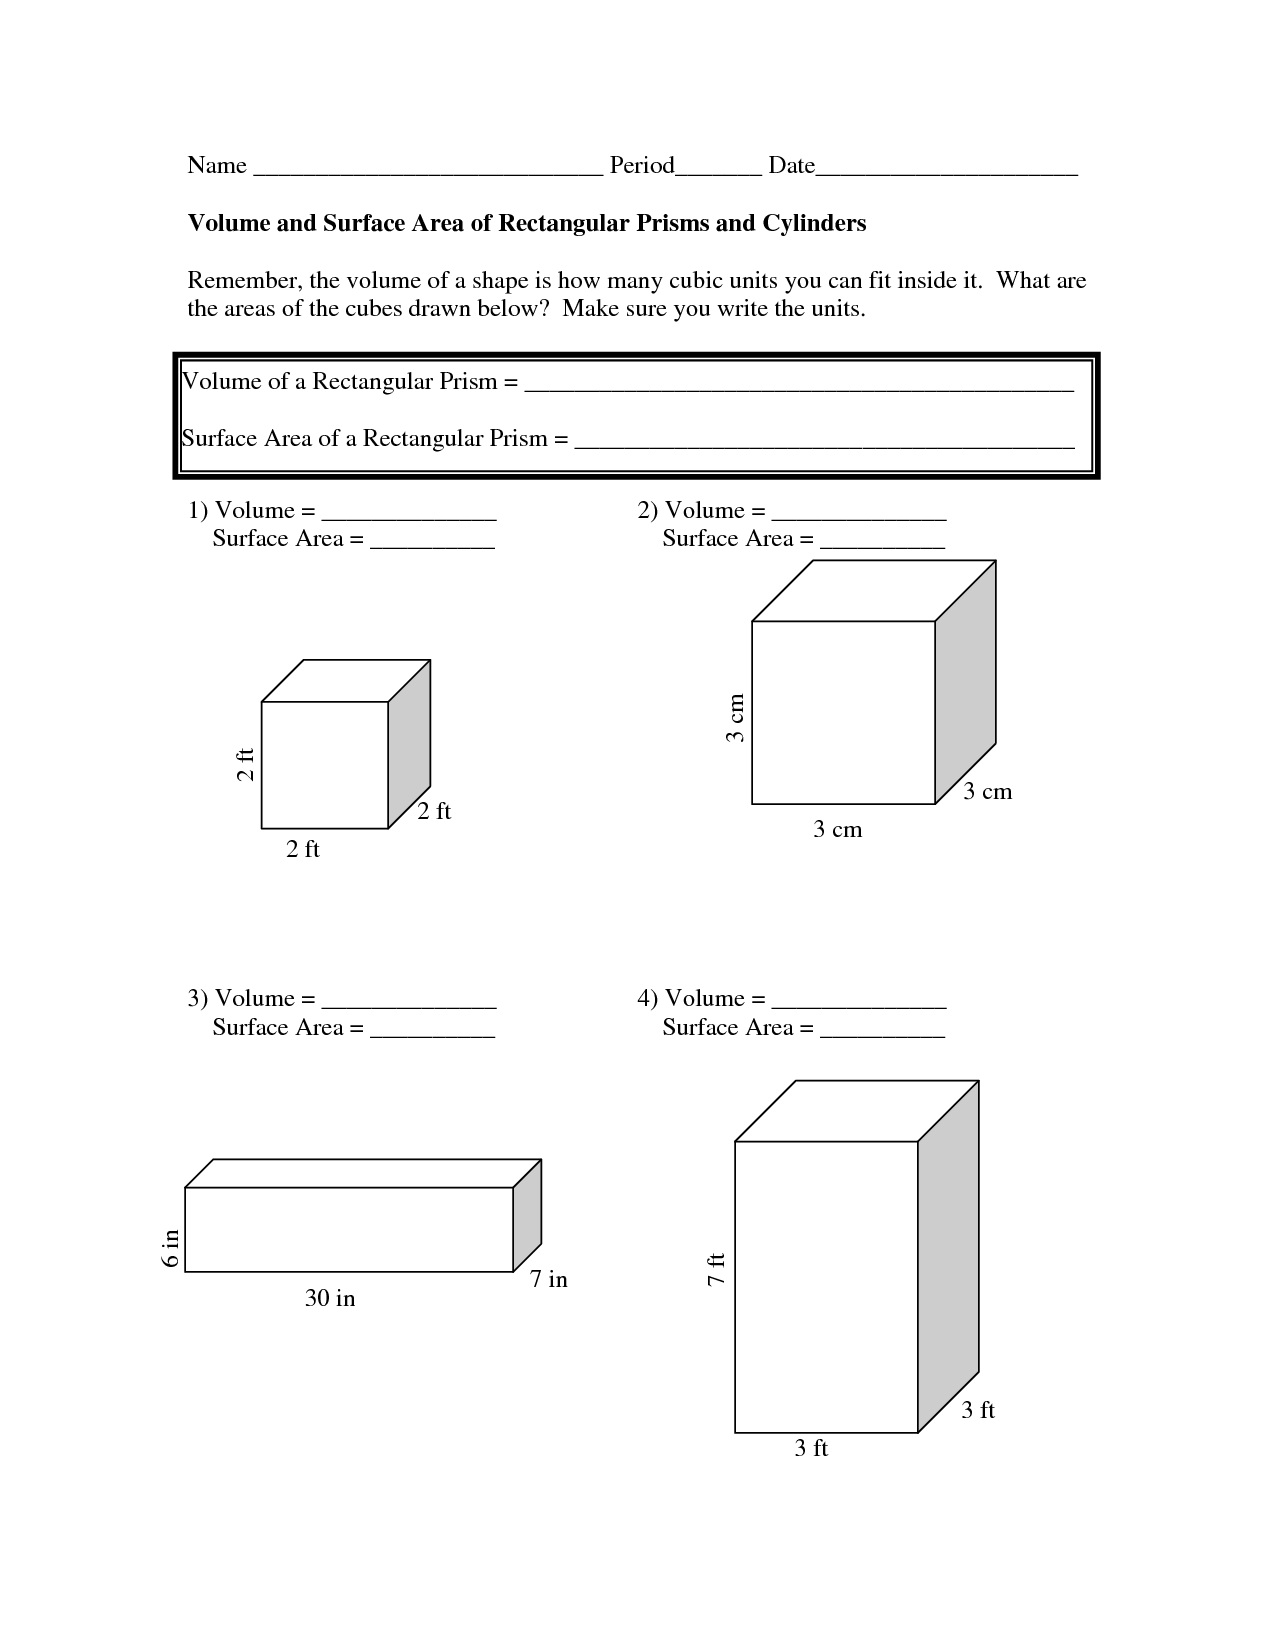 worksheet Volume Of 3d Shapes Worksheet Pdf volume and surface area worksheets worksheets